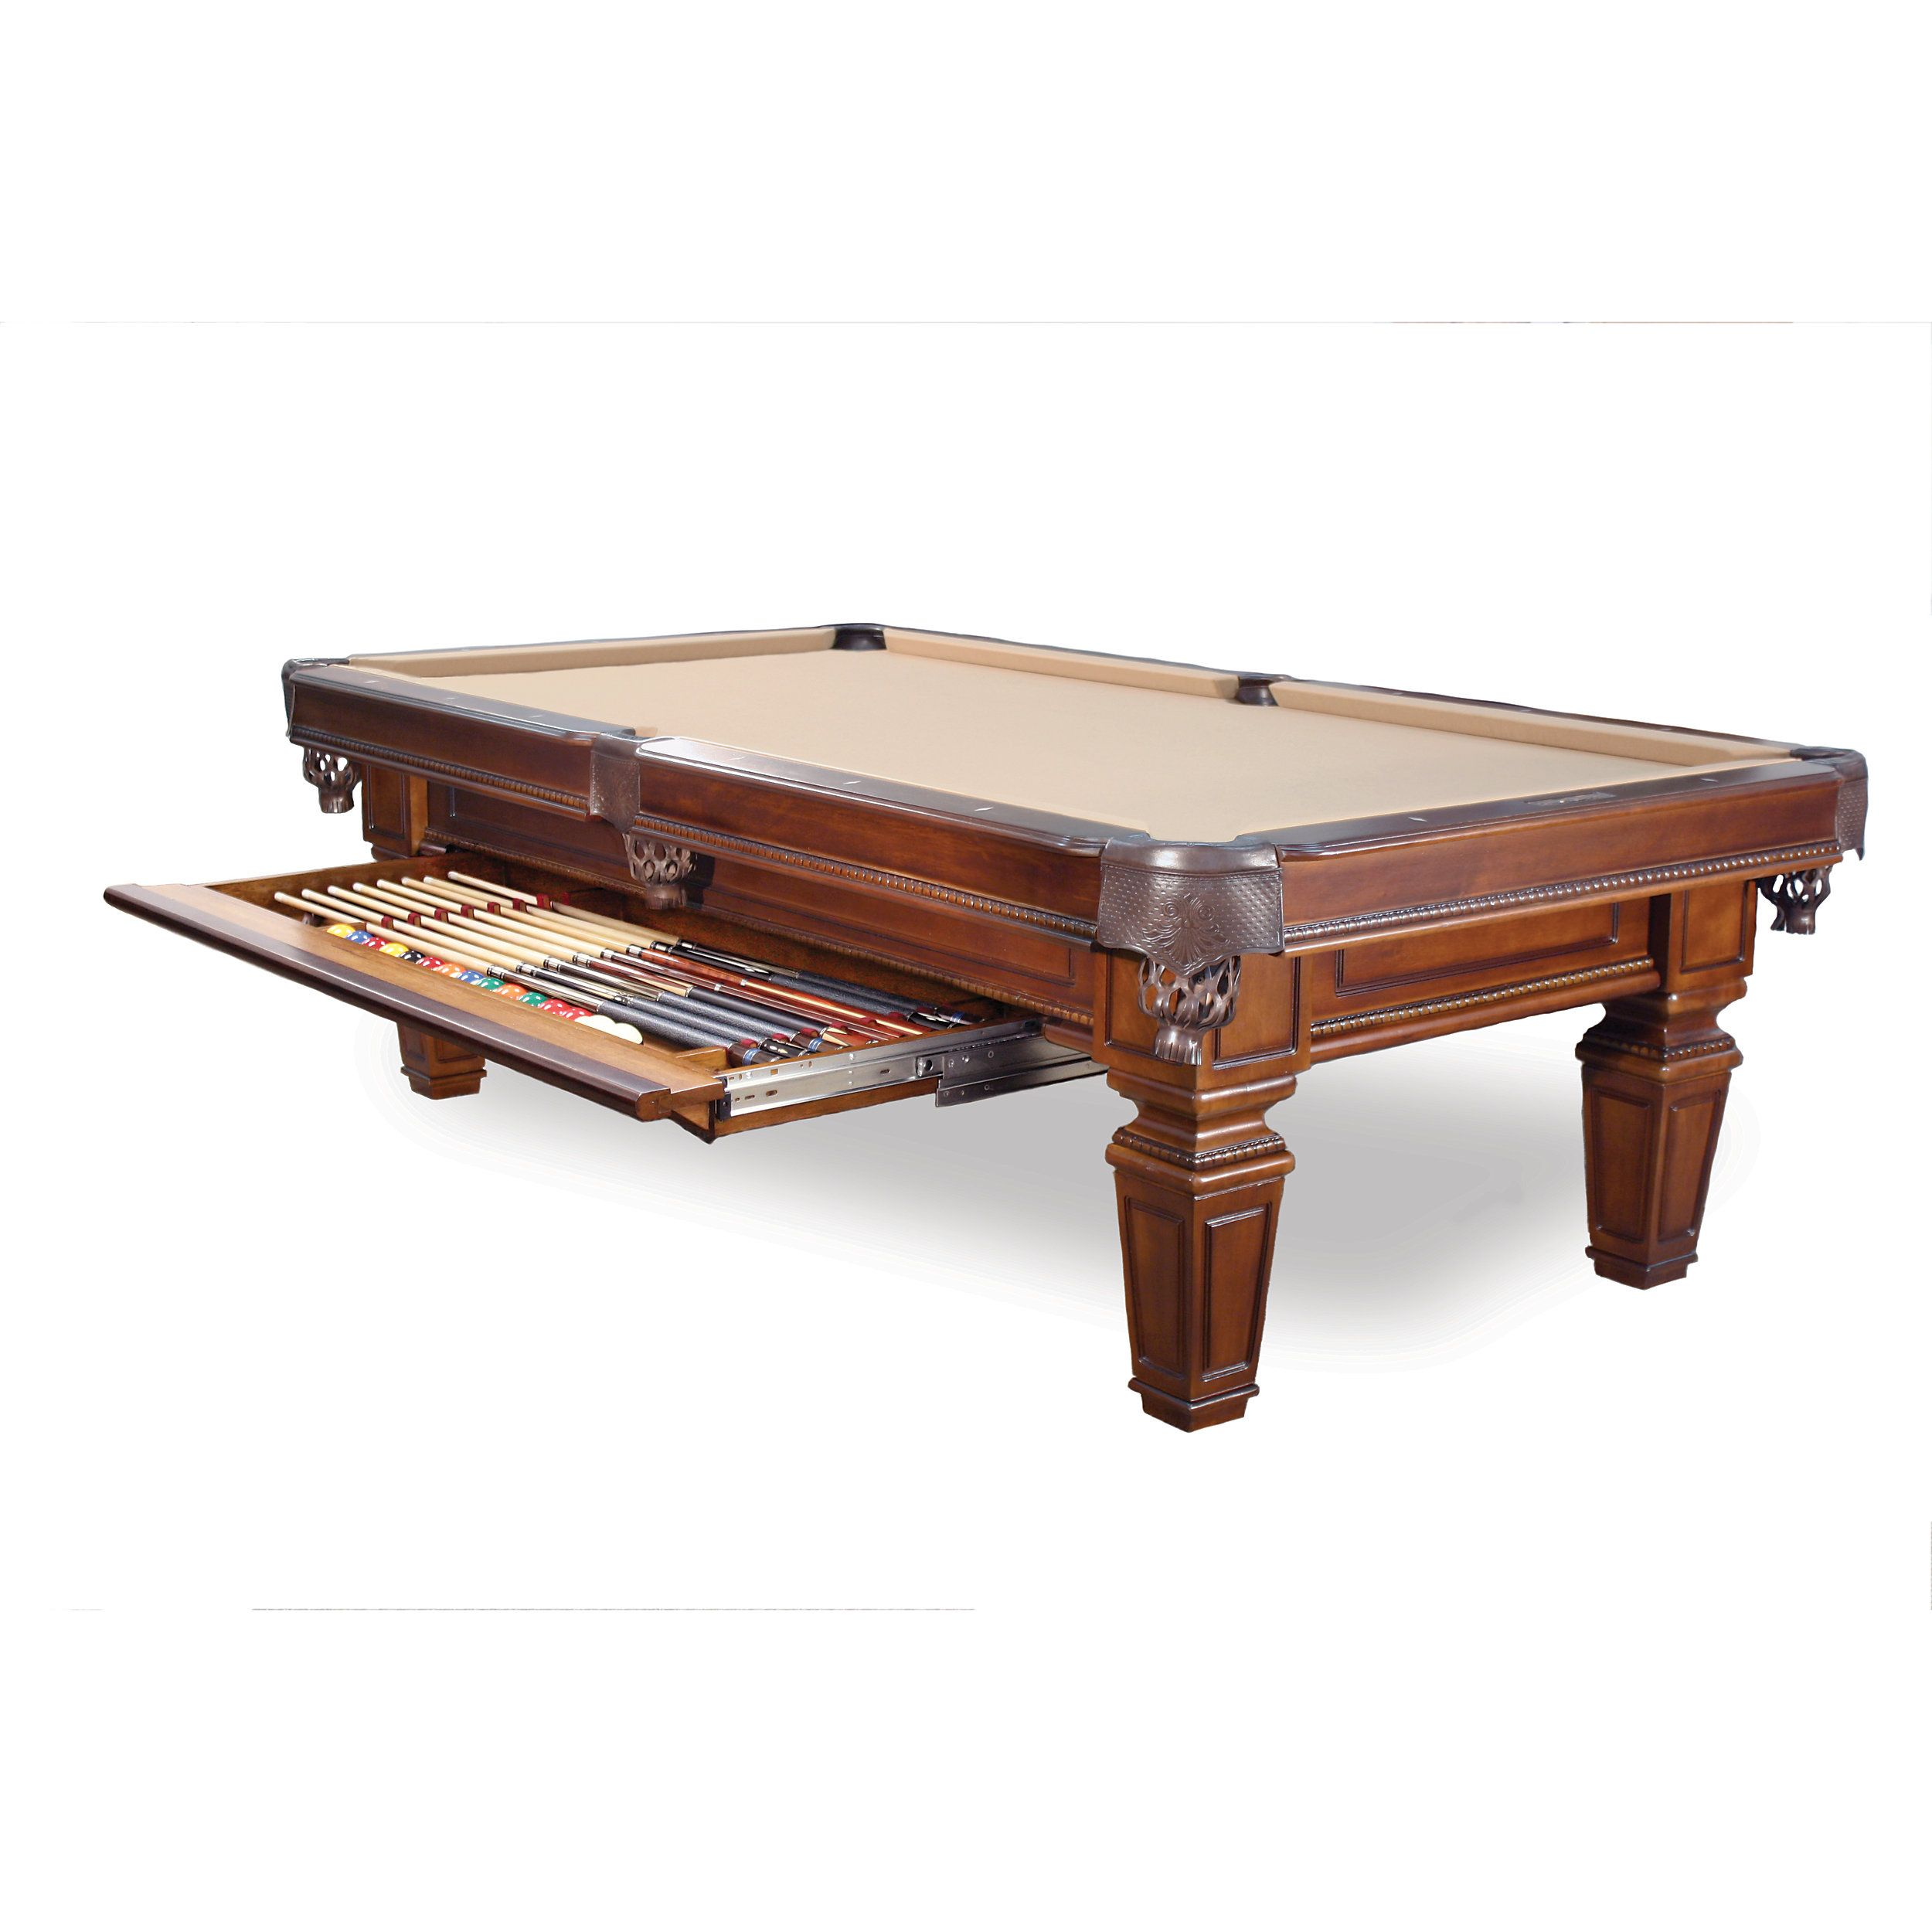 game from tables games outdoor randroutdoors and img inc r table custom weather foosball outdoors products billiards all